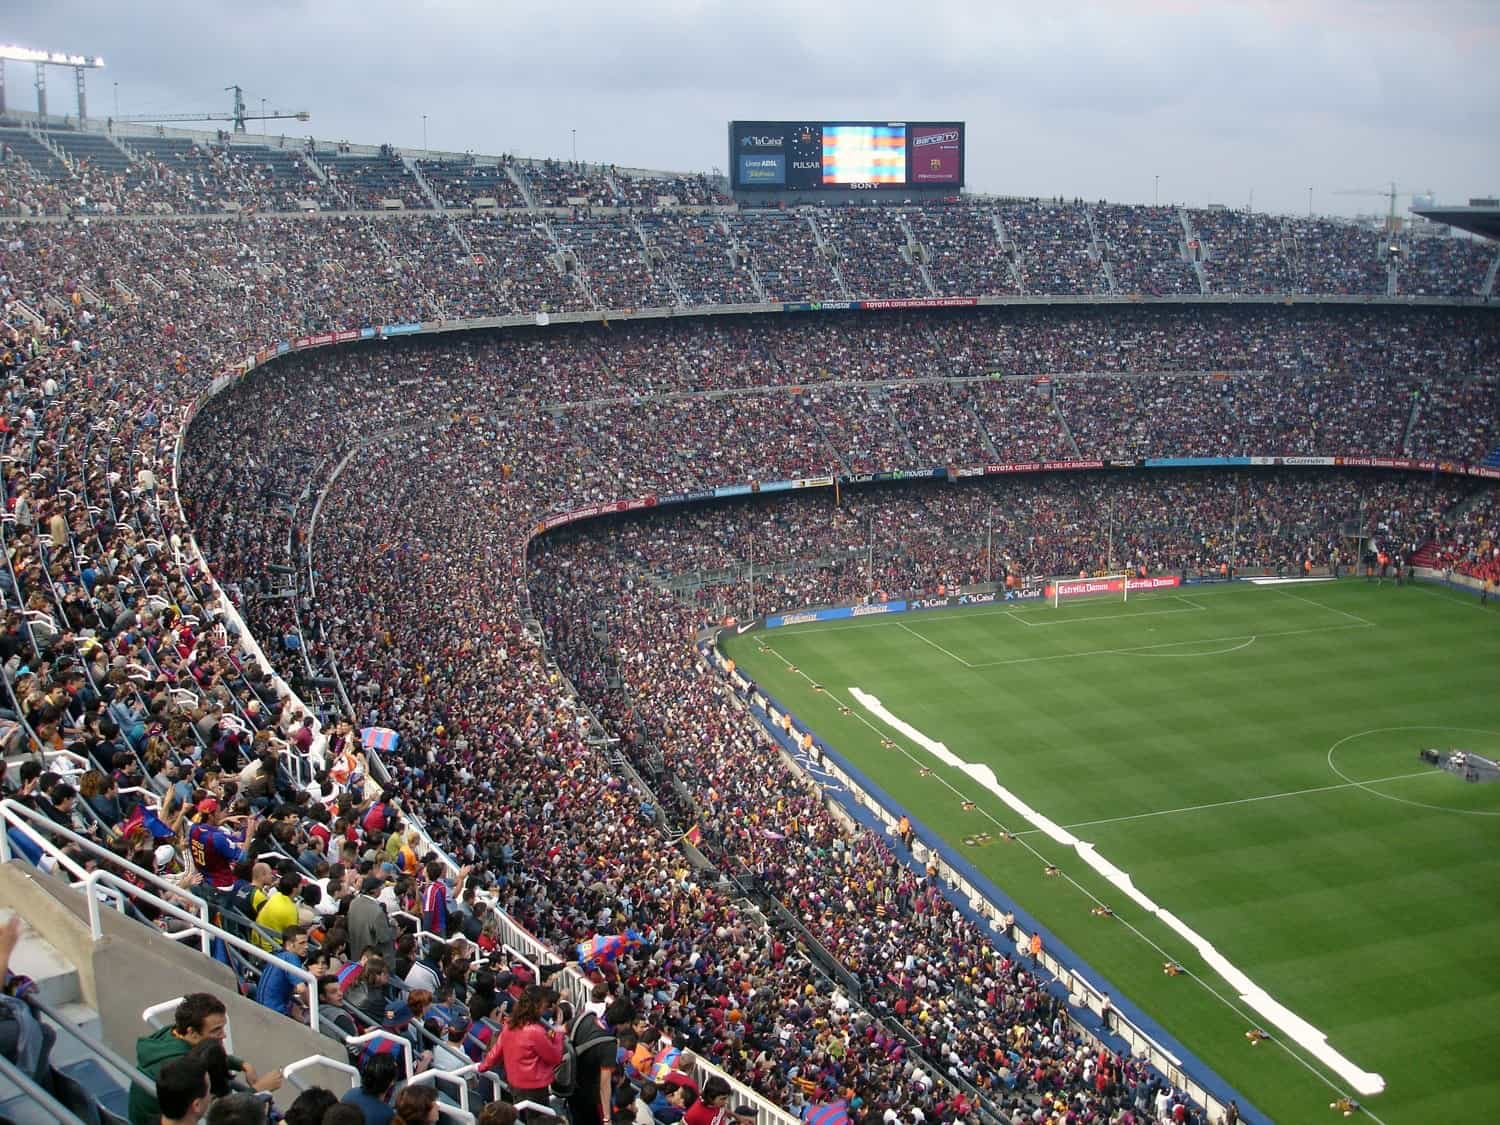 stadium full of spectators, sports facts